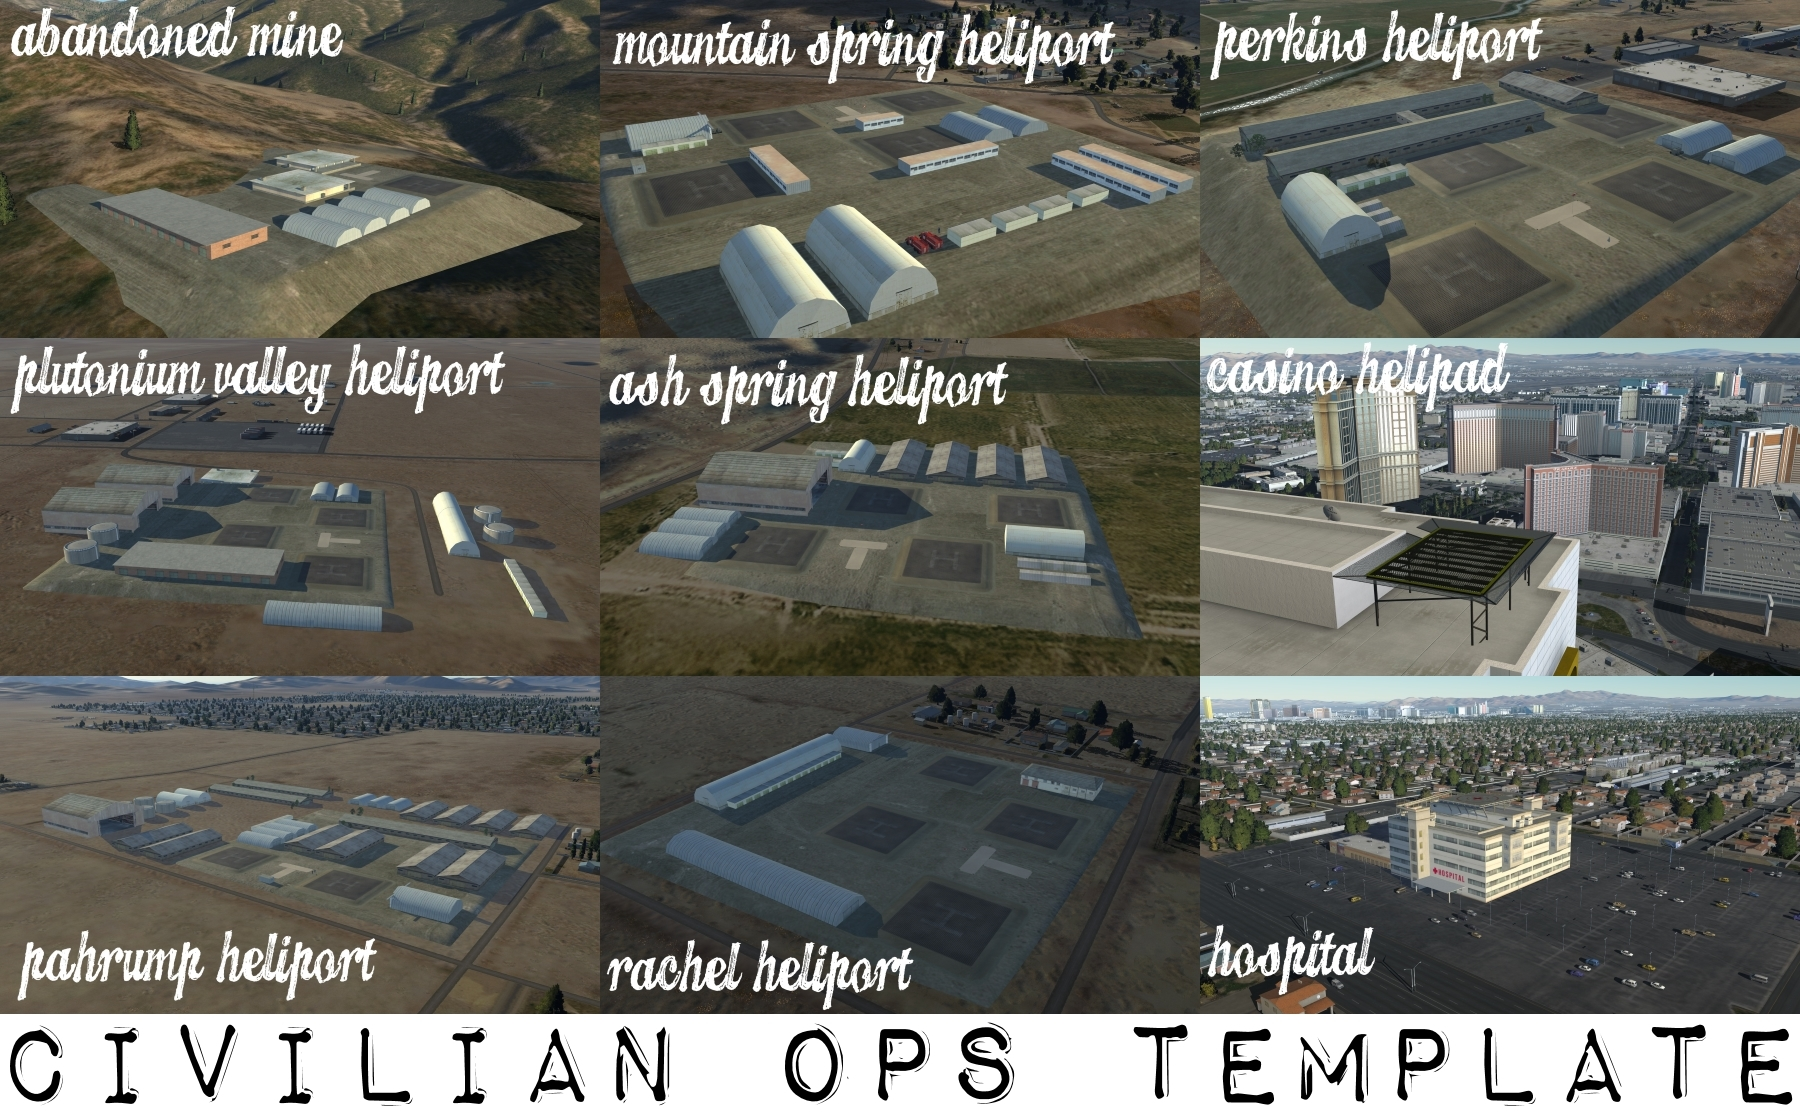 Civilian oriented gameplay in dcs world flight sims mudspike forums ahv6xykg1800x1114 133 mb gumiabroncs Choice Image